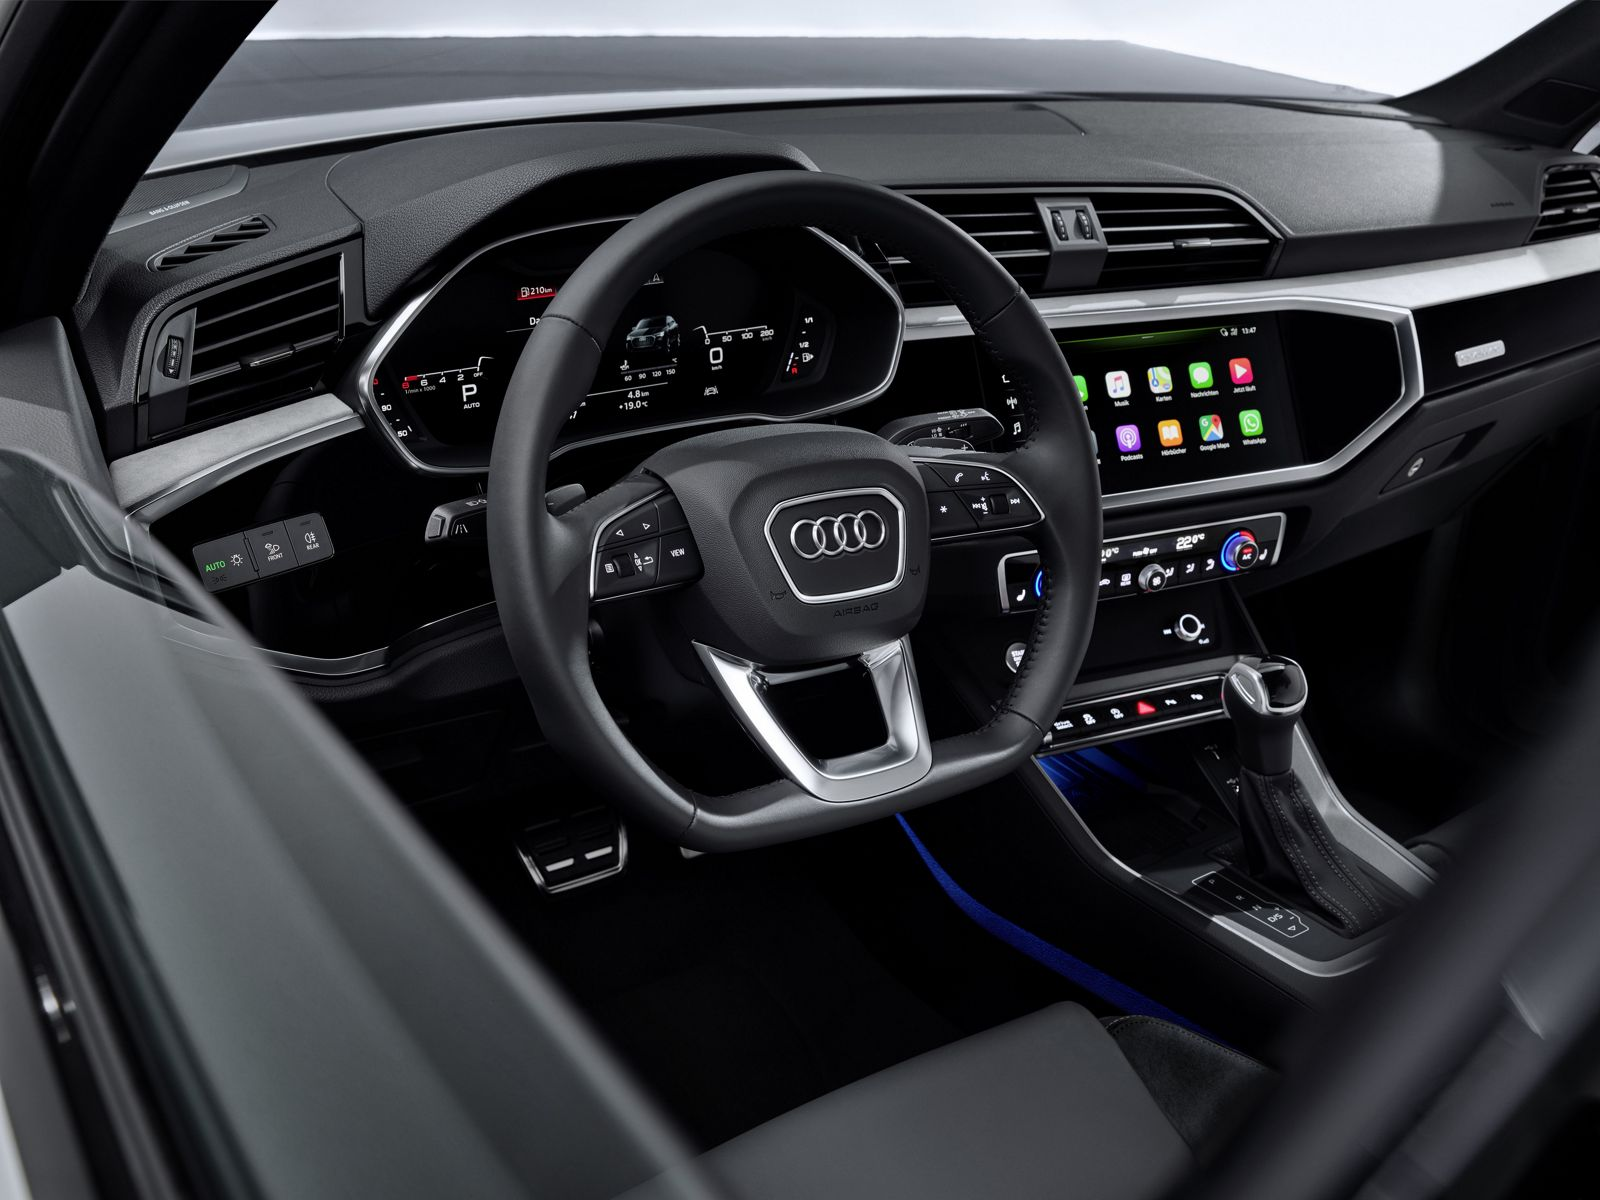 Boite Archive Design Audi Q3 Sportback Interior - Car Body Design